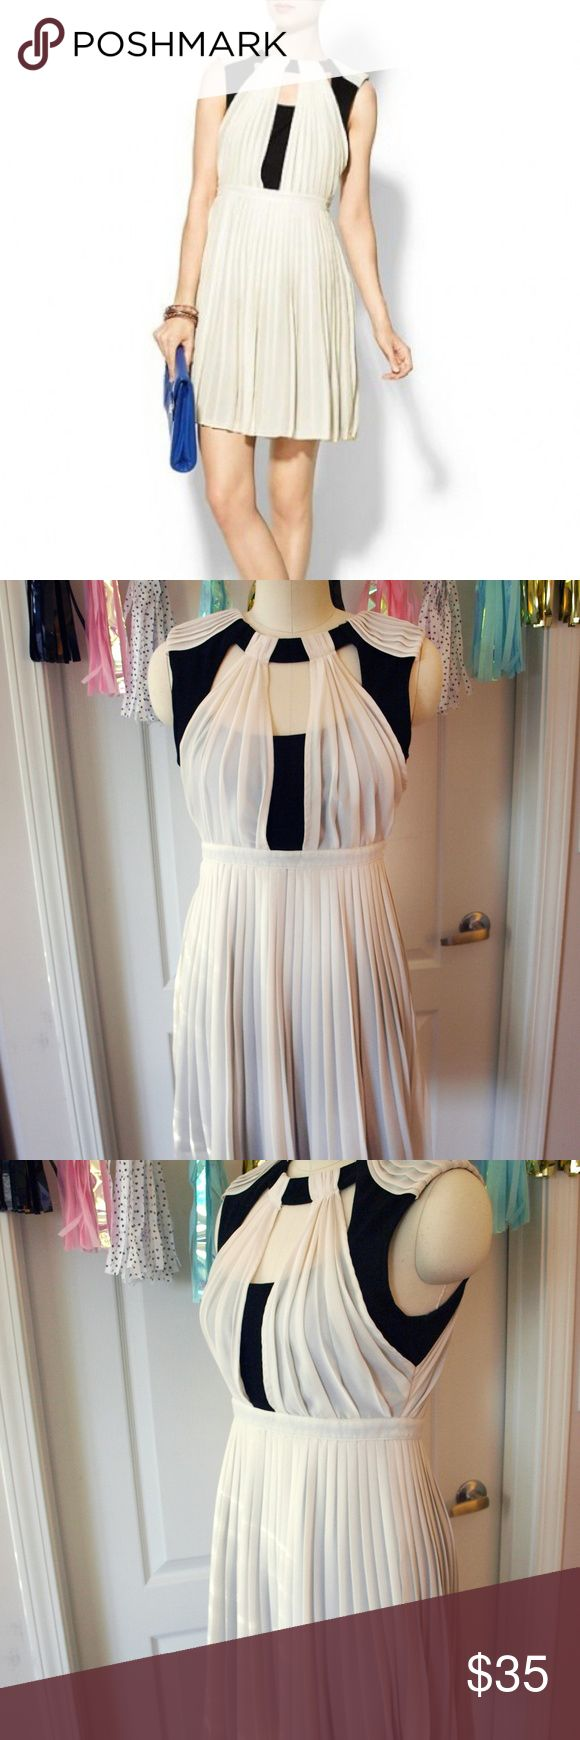 TINLEY ROAD Chic Pleated Cutout Dress Size Medium TRUE TO SIZE Gorgeous ivory pleated semi-sheer dress layered over a black sheath dress with a black slip skirt underneath. This dress has beautiful details on the bodice giving it a cutout effect. Used but in great condition, no visible flaws. Worn only maybe 3-4 times. Tinley Road Dresses